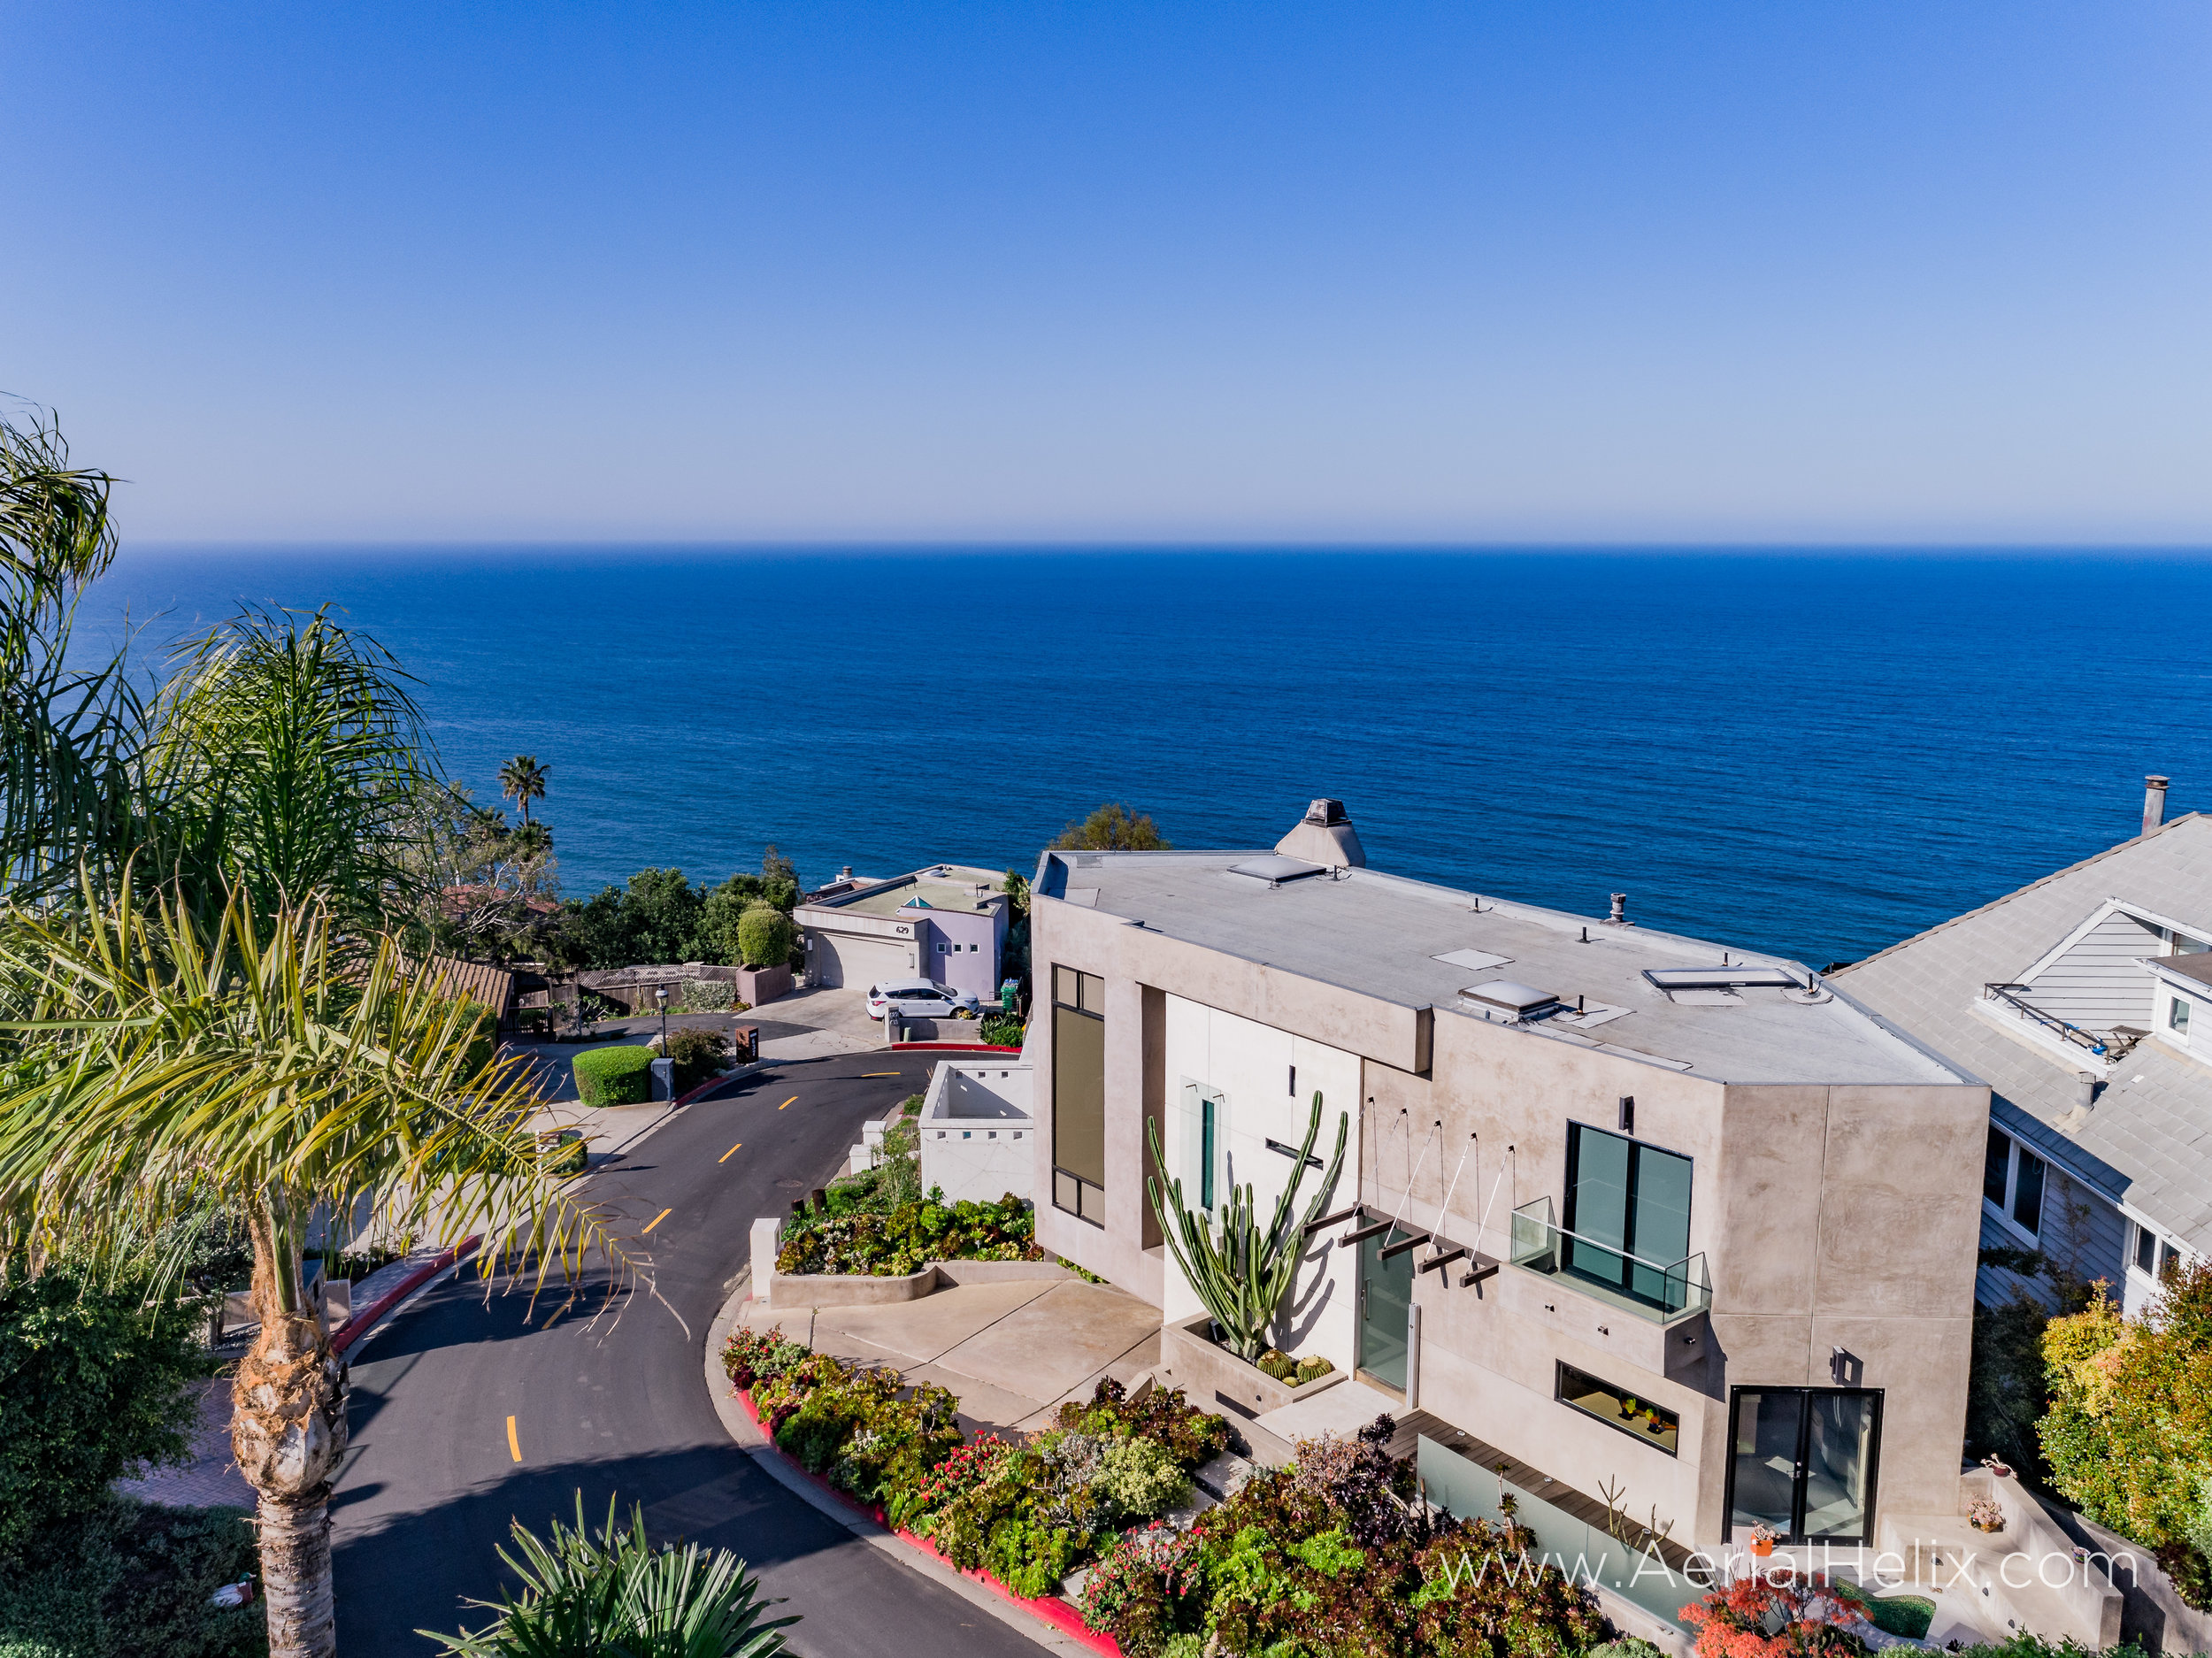 HELIX - Lagun Beach Homes - Aerial Real Estate Photographer-14.jpg